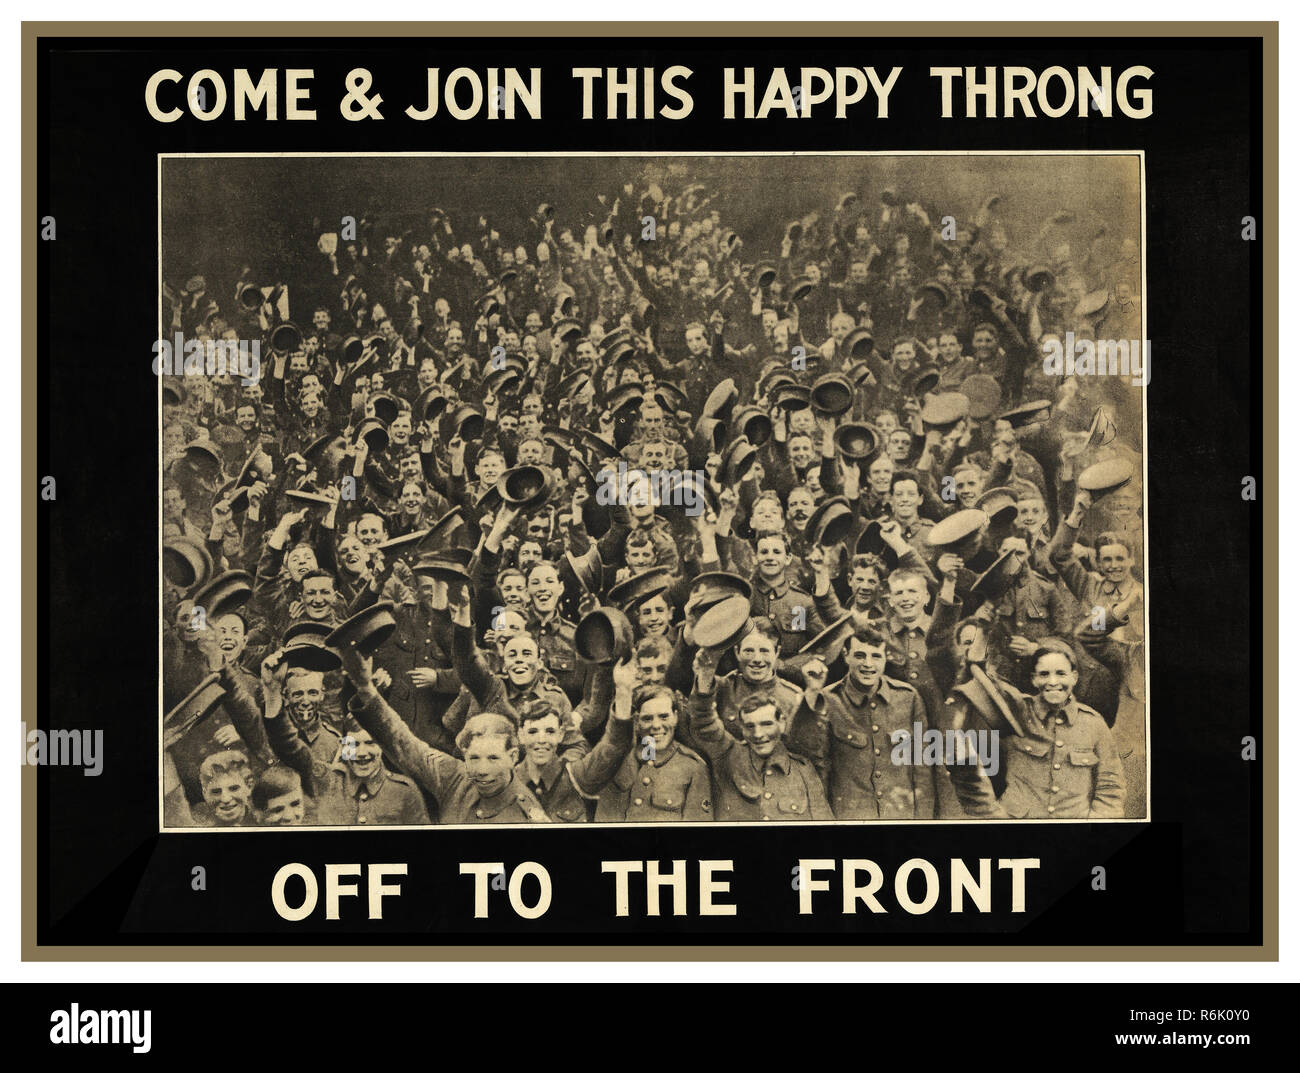 """Vintage British WW1 Propaganda Recruitment Poster with image of a large crowd of smiling Irish infantrymen. They are holding their caps aloft.  """"COME and JOIN THIS HAPPY THRONG OFF TO THE FRONT"""" 1914 - Stock Image"""